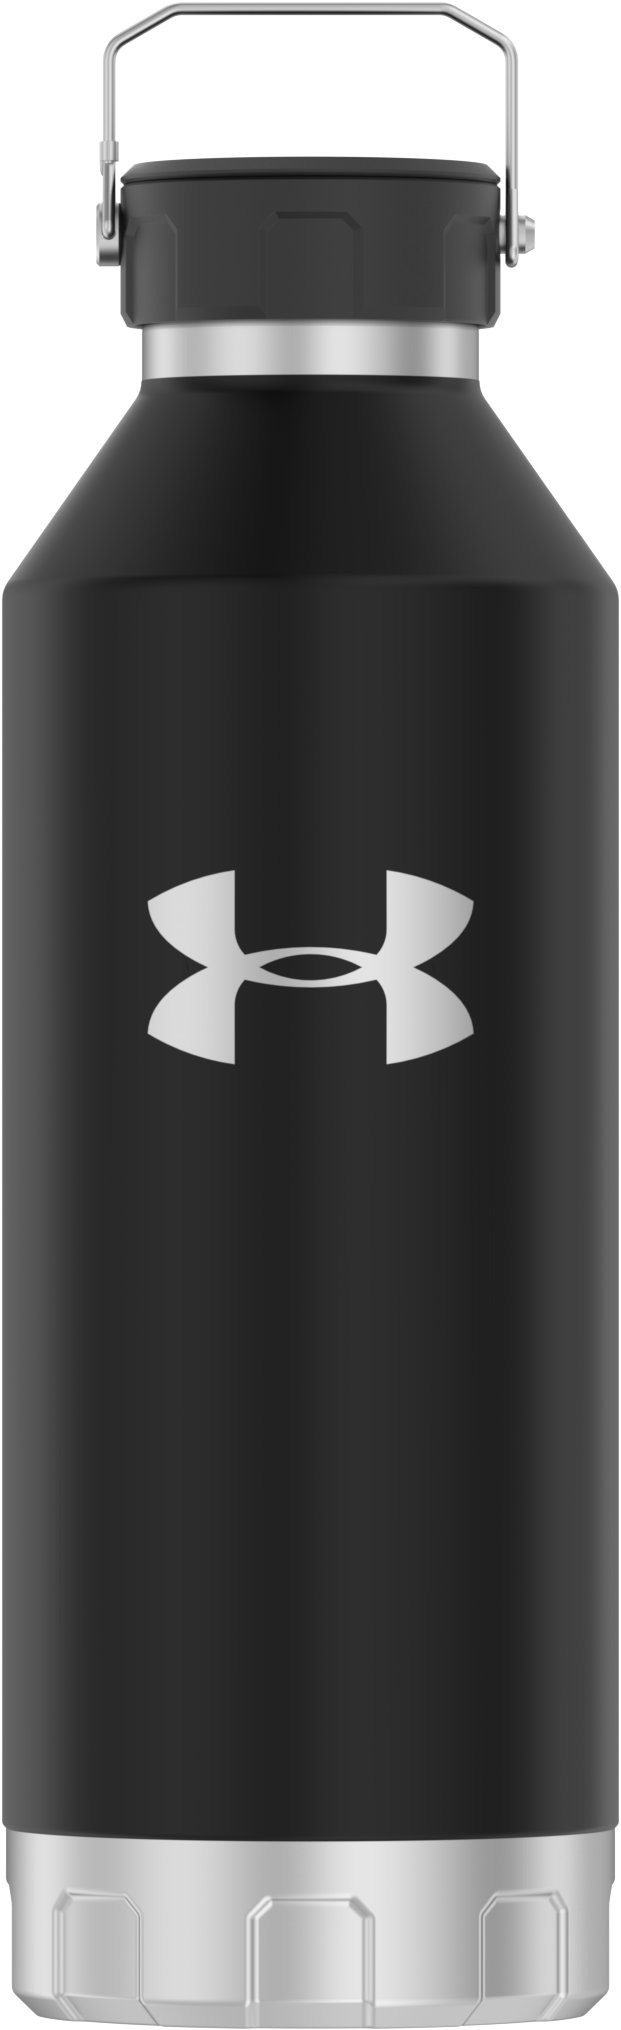 UA Peak 40 oz. Stainless Steel Water Bottle, Black